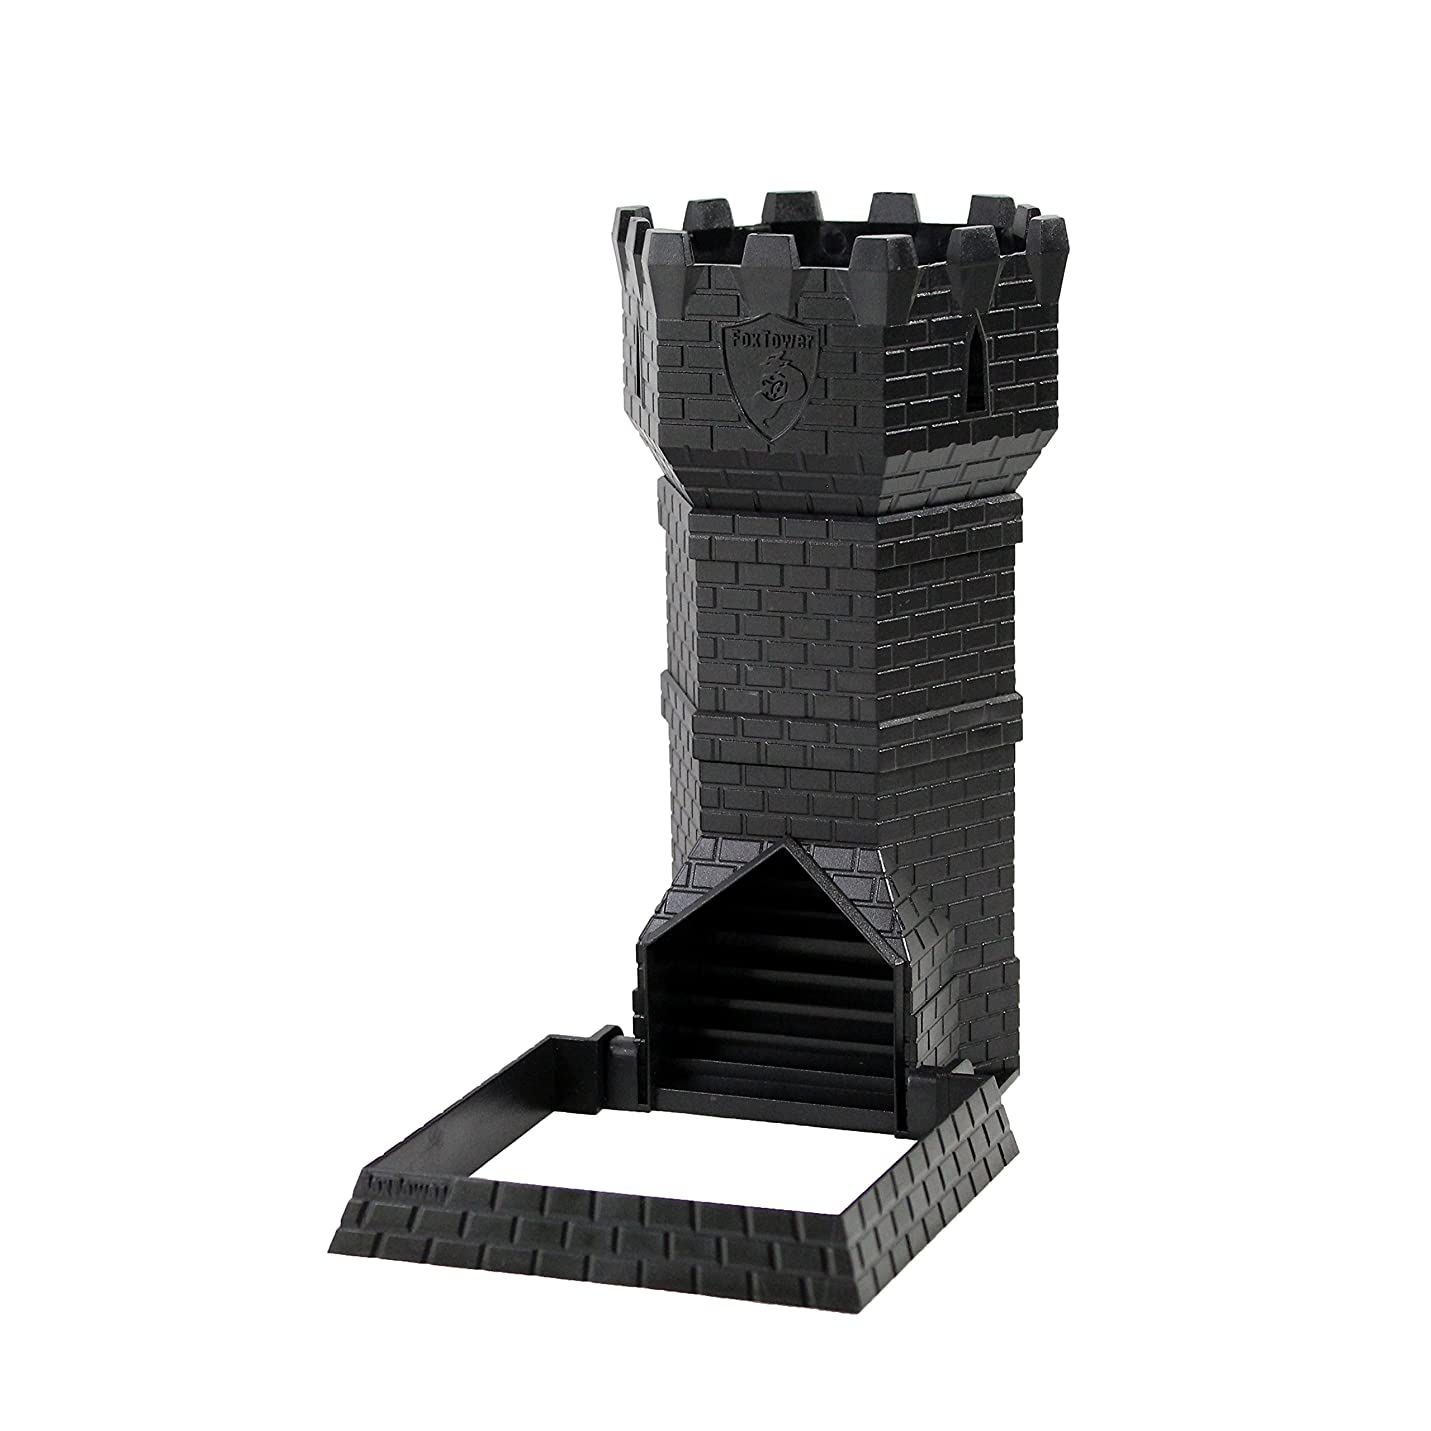 強制的予定逮捕FoxTower, Normal Size Dice Tower for RPGs and Board Games